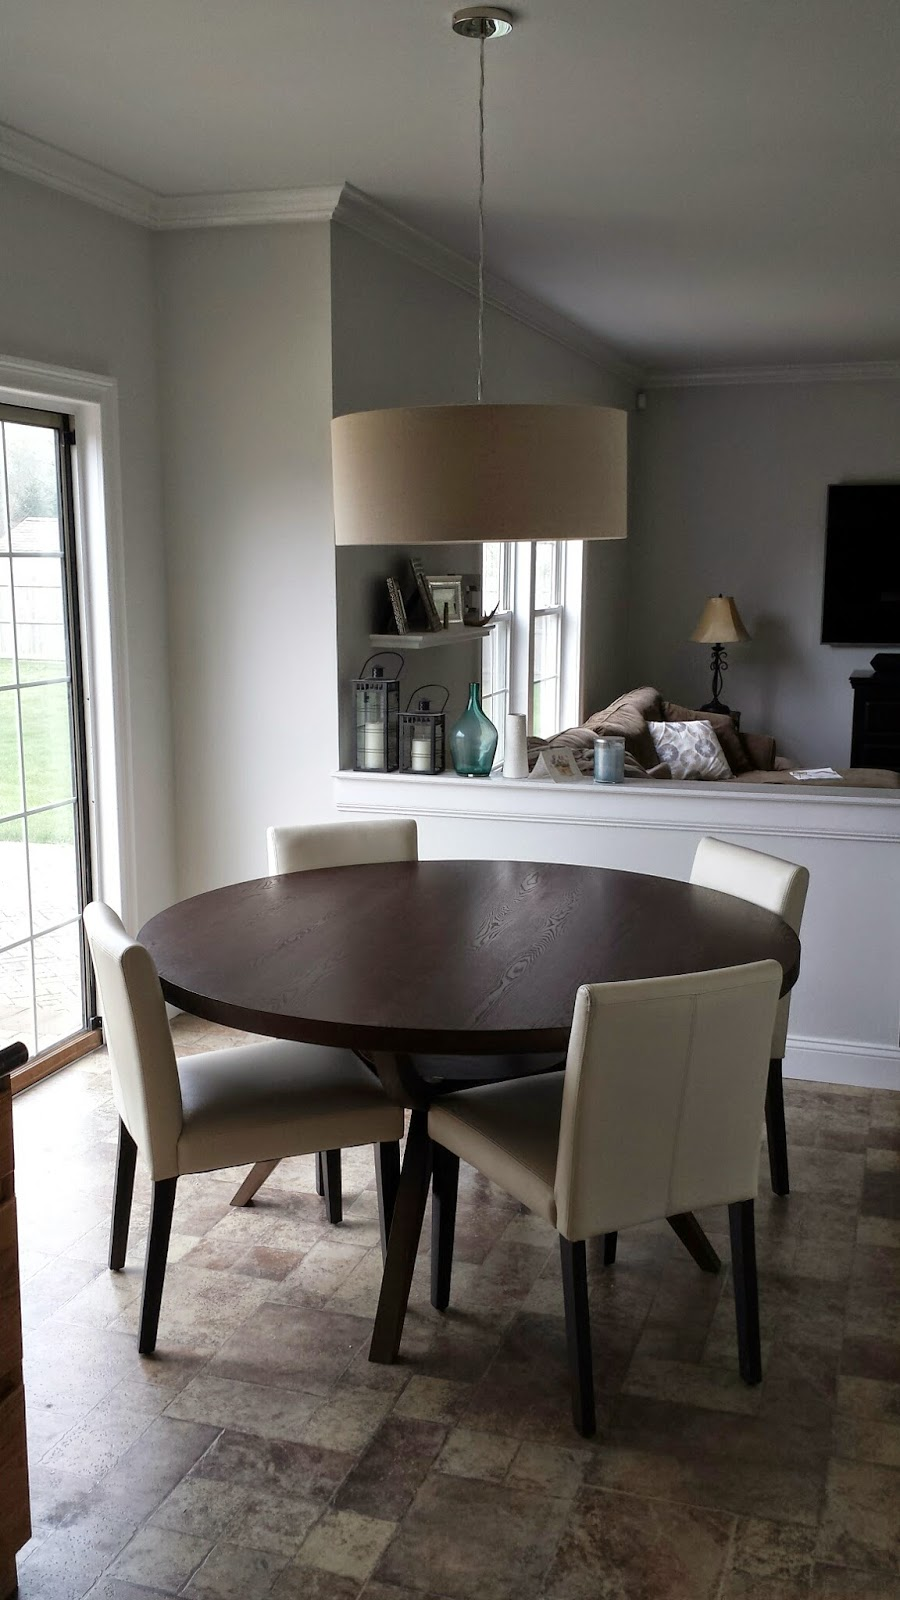 West Elm kitchen table, chairs and light fixture | The ...